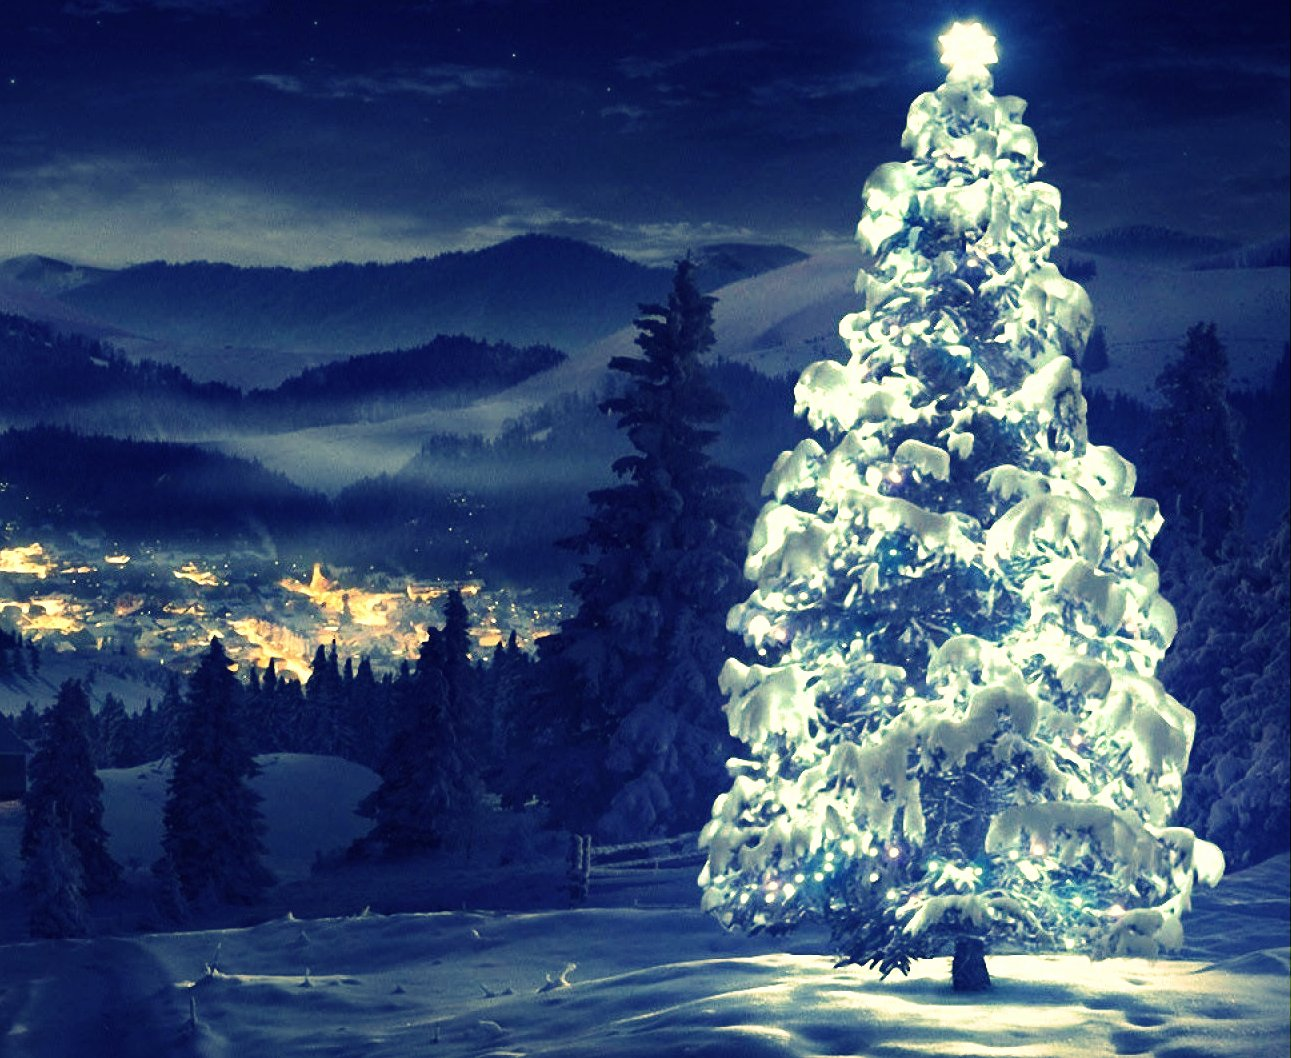 festival break: 2016 xmas | christmas theme hd wallpaper for mobile